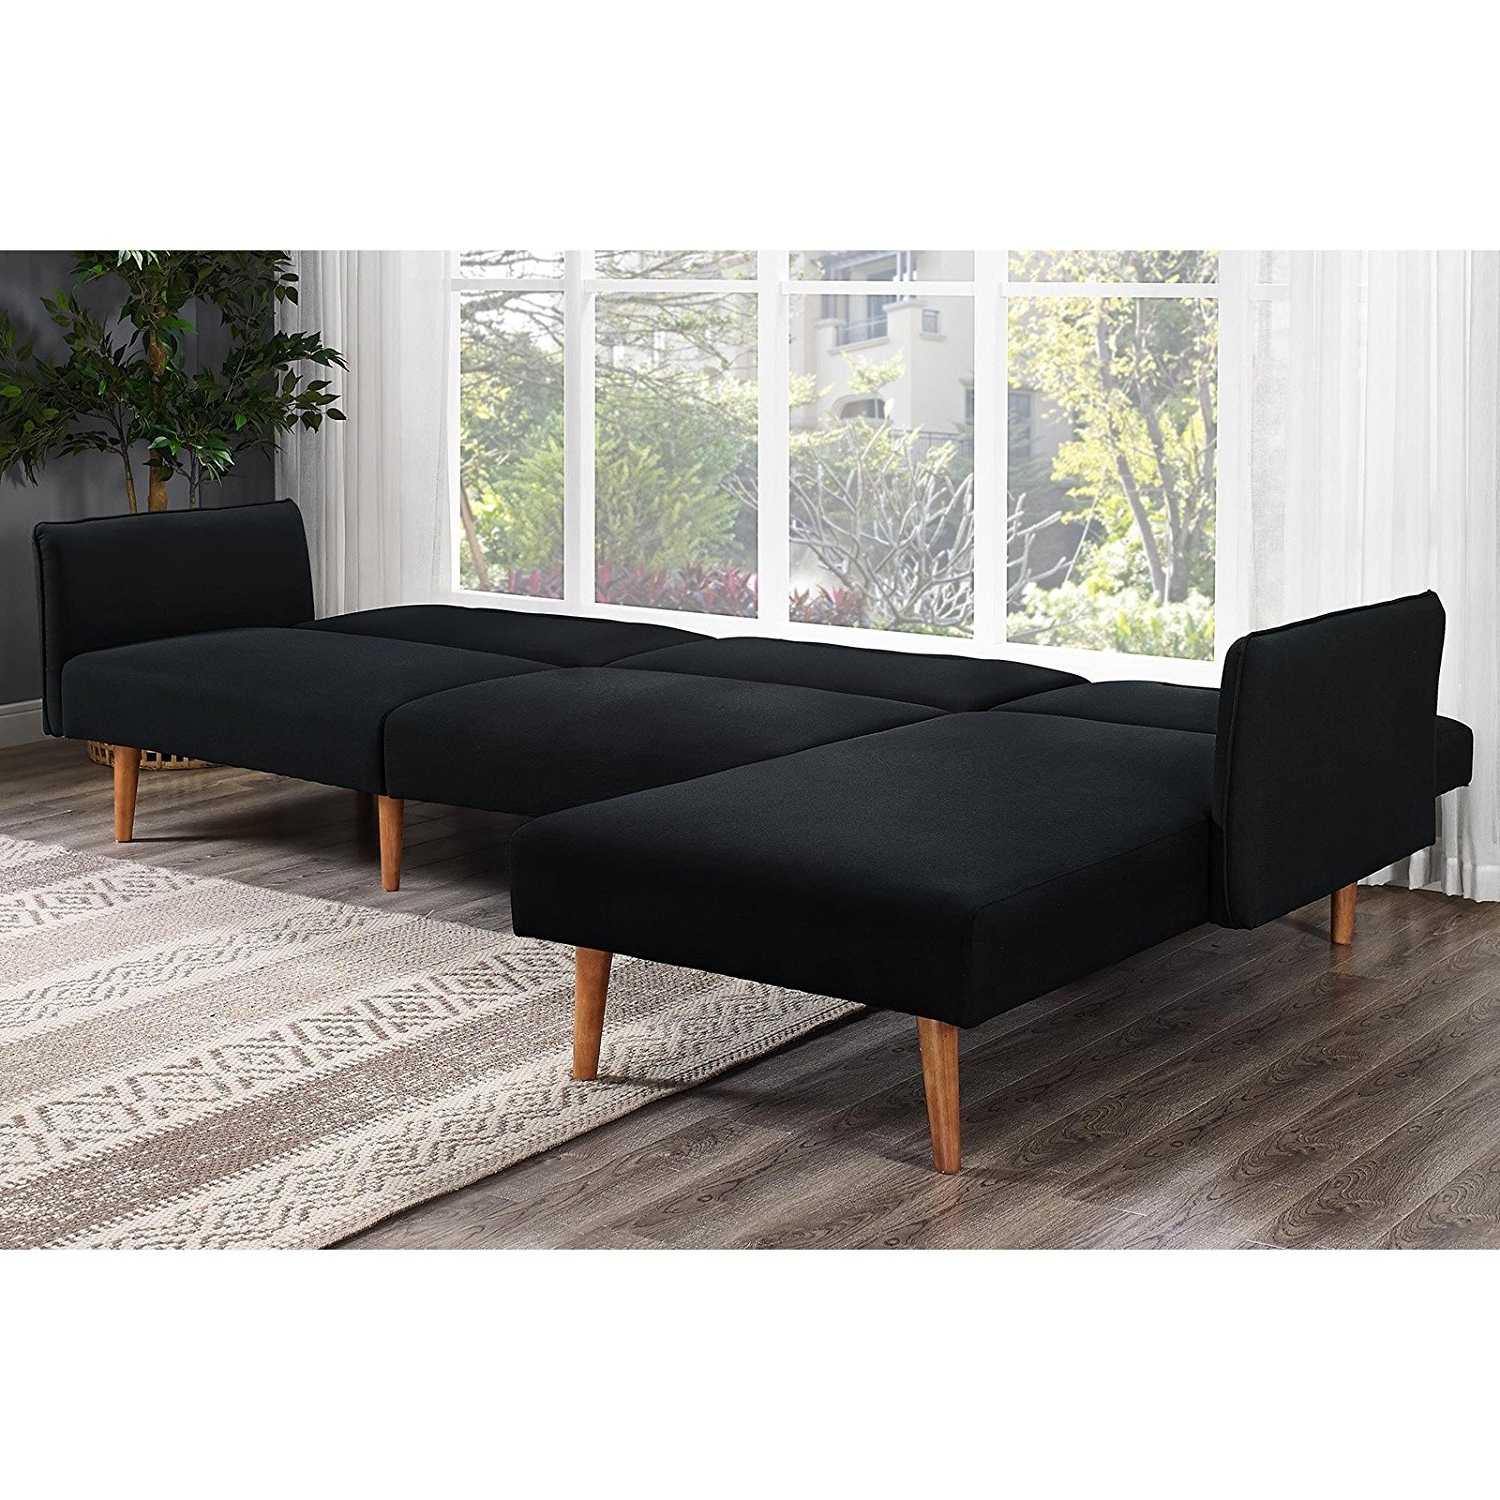 Preferred Amazon: Dhp Brent Futon Chaise: Kitchen & Dining For Futons With Chaise (View 5 of 15)